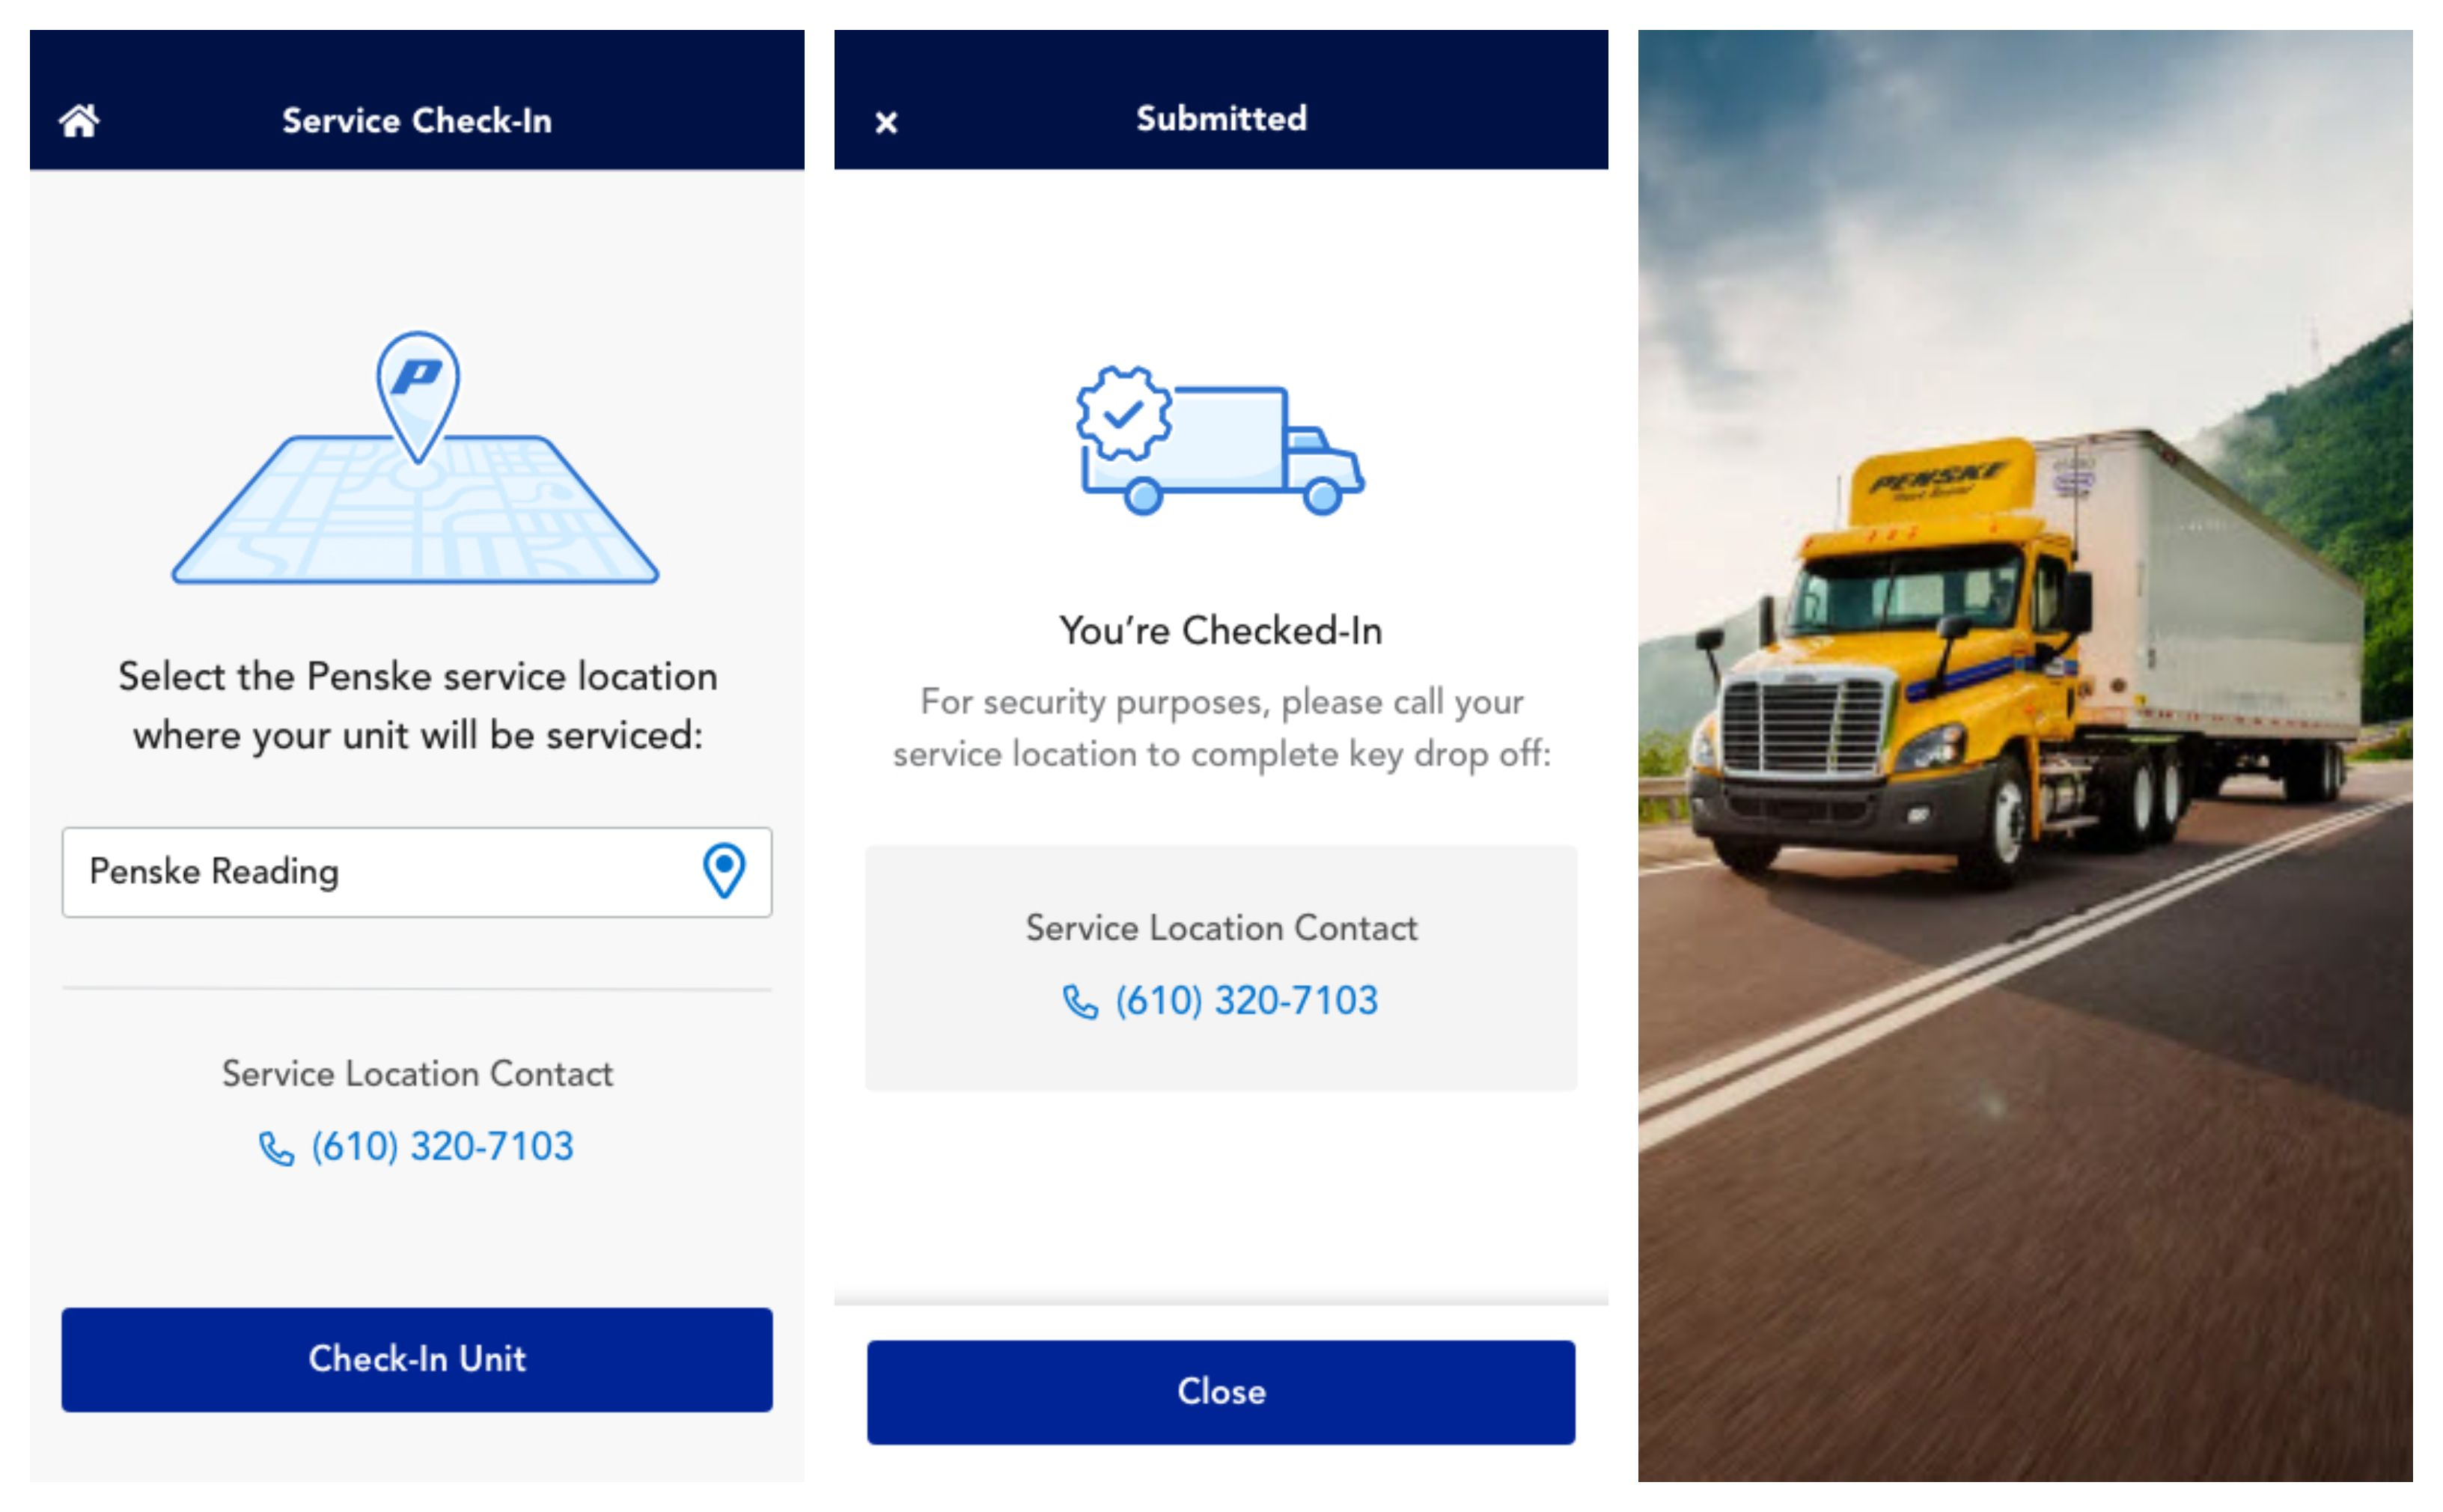 Penske Truck Leasing Introduces Remote Service Check-In